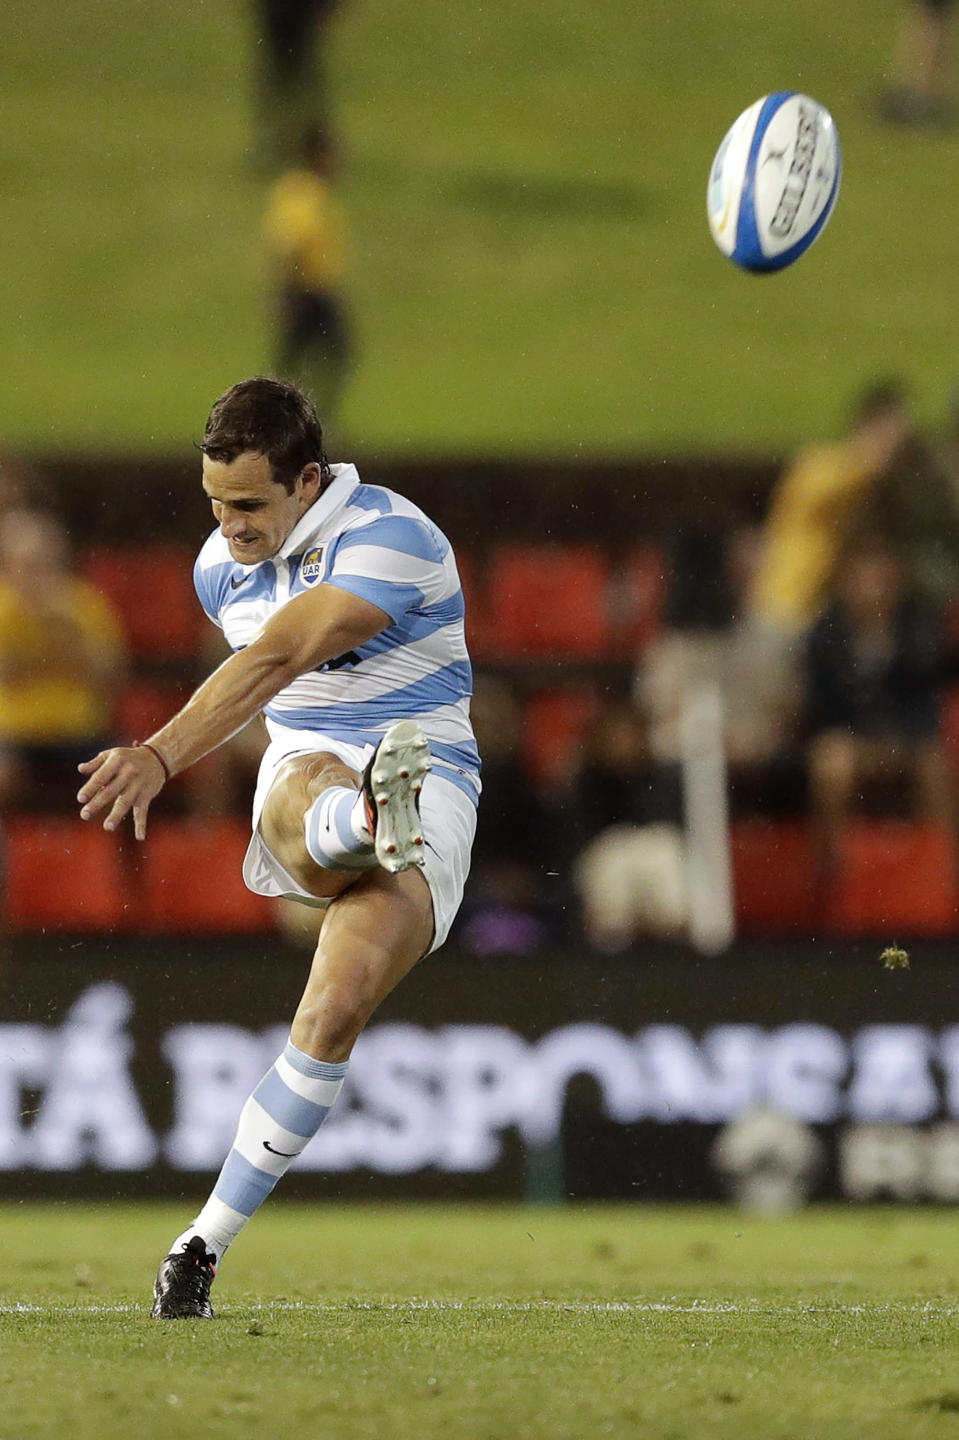 Argentina's Nicolas Sanchez, kicks a penalty during their Tri-Nations rugby union match against Australia in Newcastle, Australia, Saturday, Nov. 21, 2020. (AP Photo/Rick Rycroft)